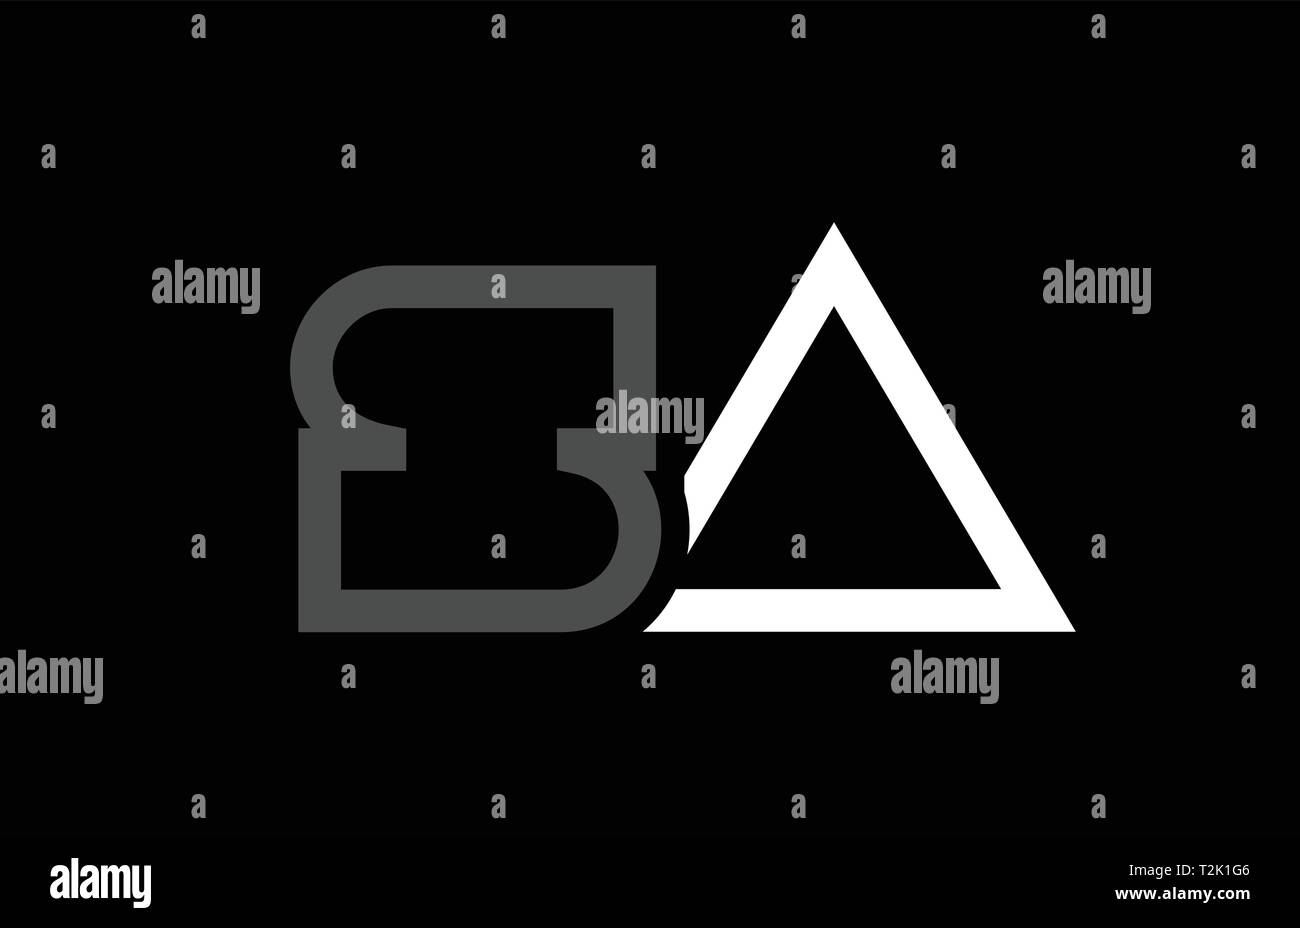 white black grey alphabet letter logo combination sa s a design suitable for a company or business - Stock Vector